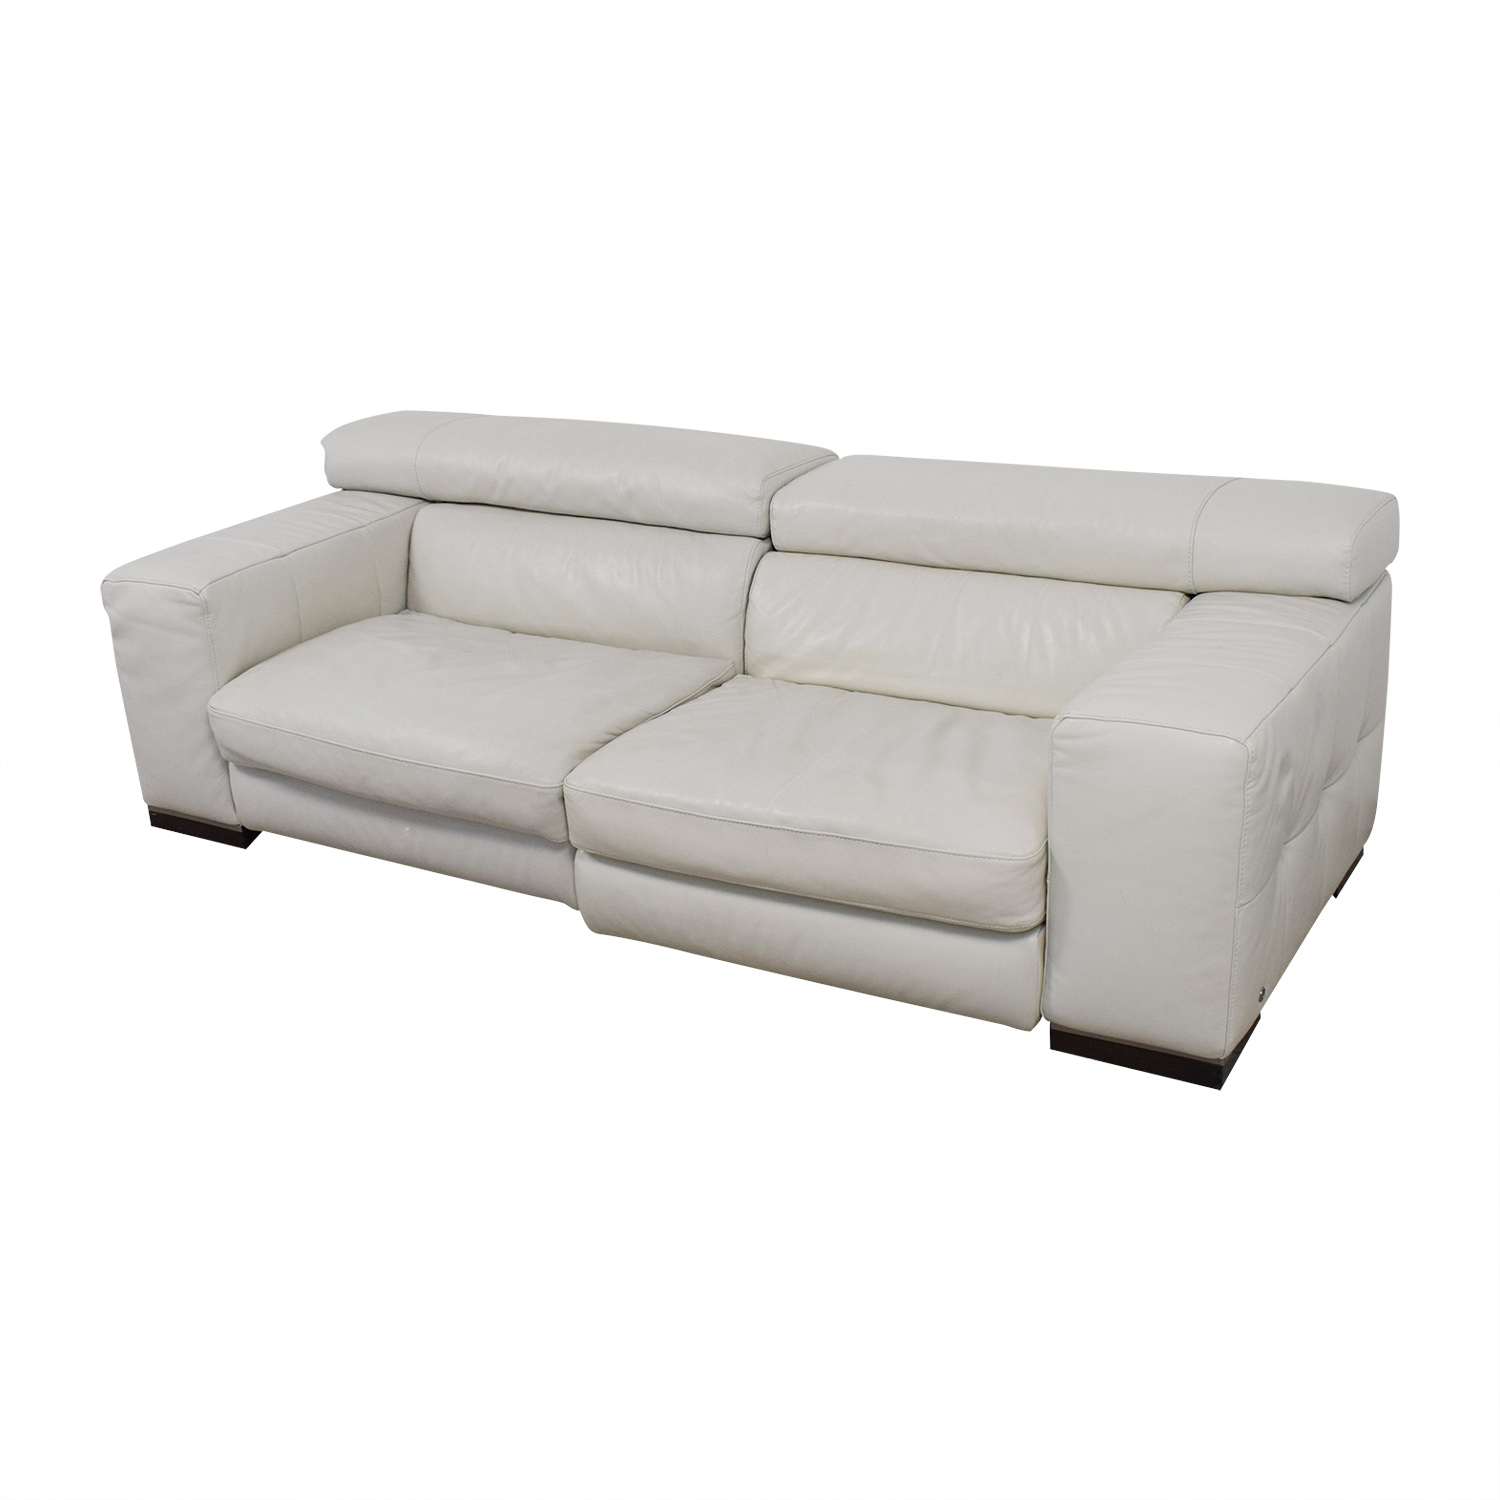 Leather Sofa Price: Natuzzi Natuzzi White Leather Sofa / Sofas